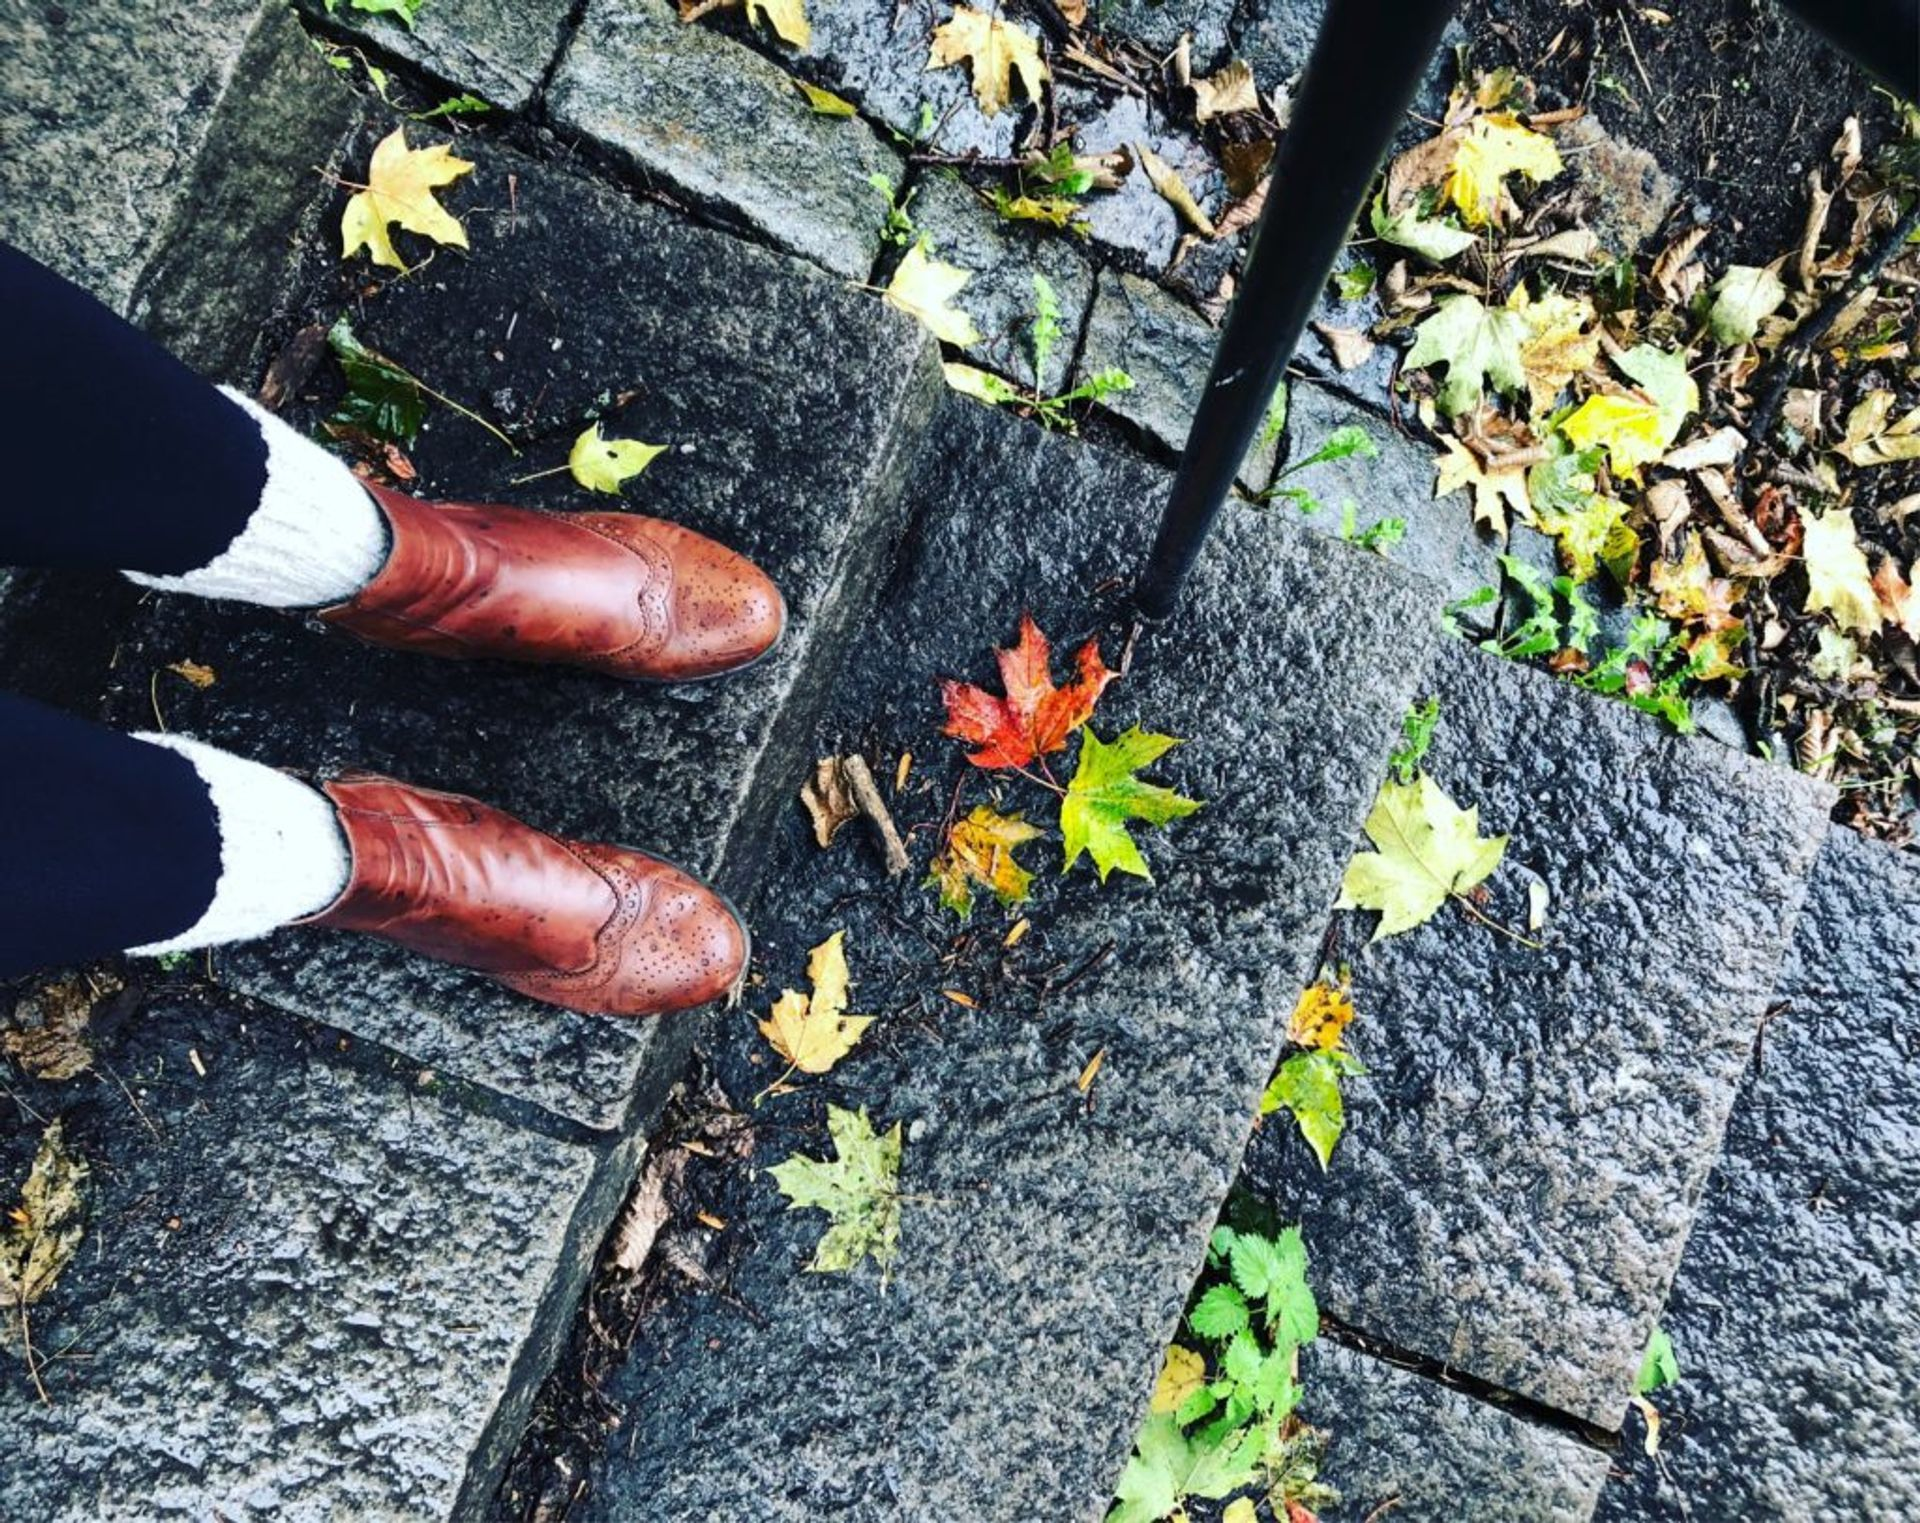 Sara's boots surrounded by fallen leaves on a path.